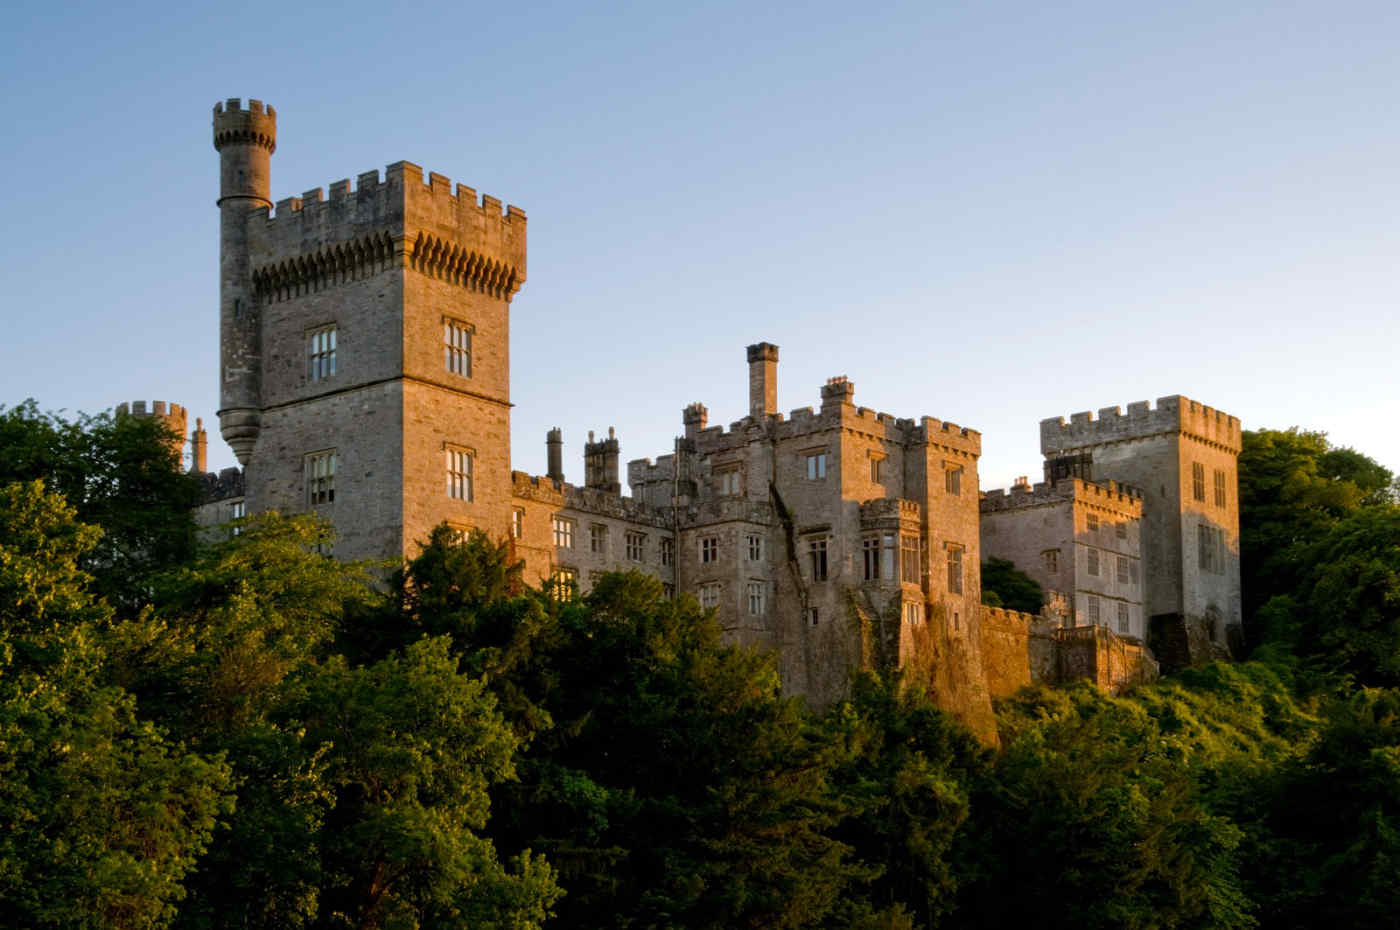 Lismore Castle at Waterford, Ireland